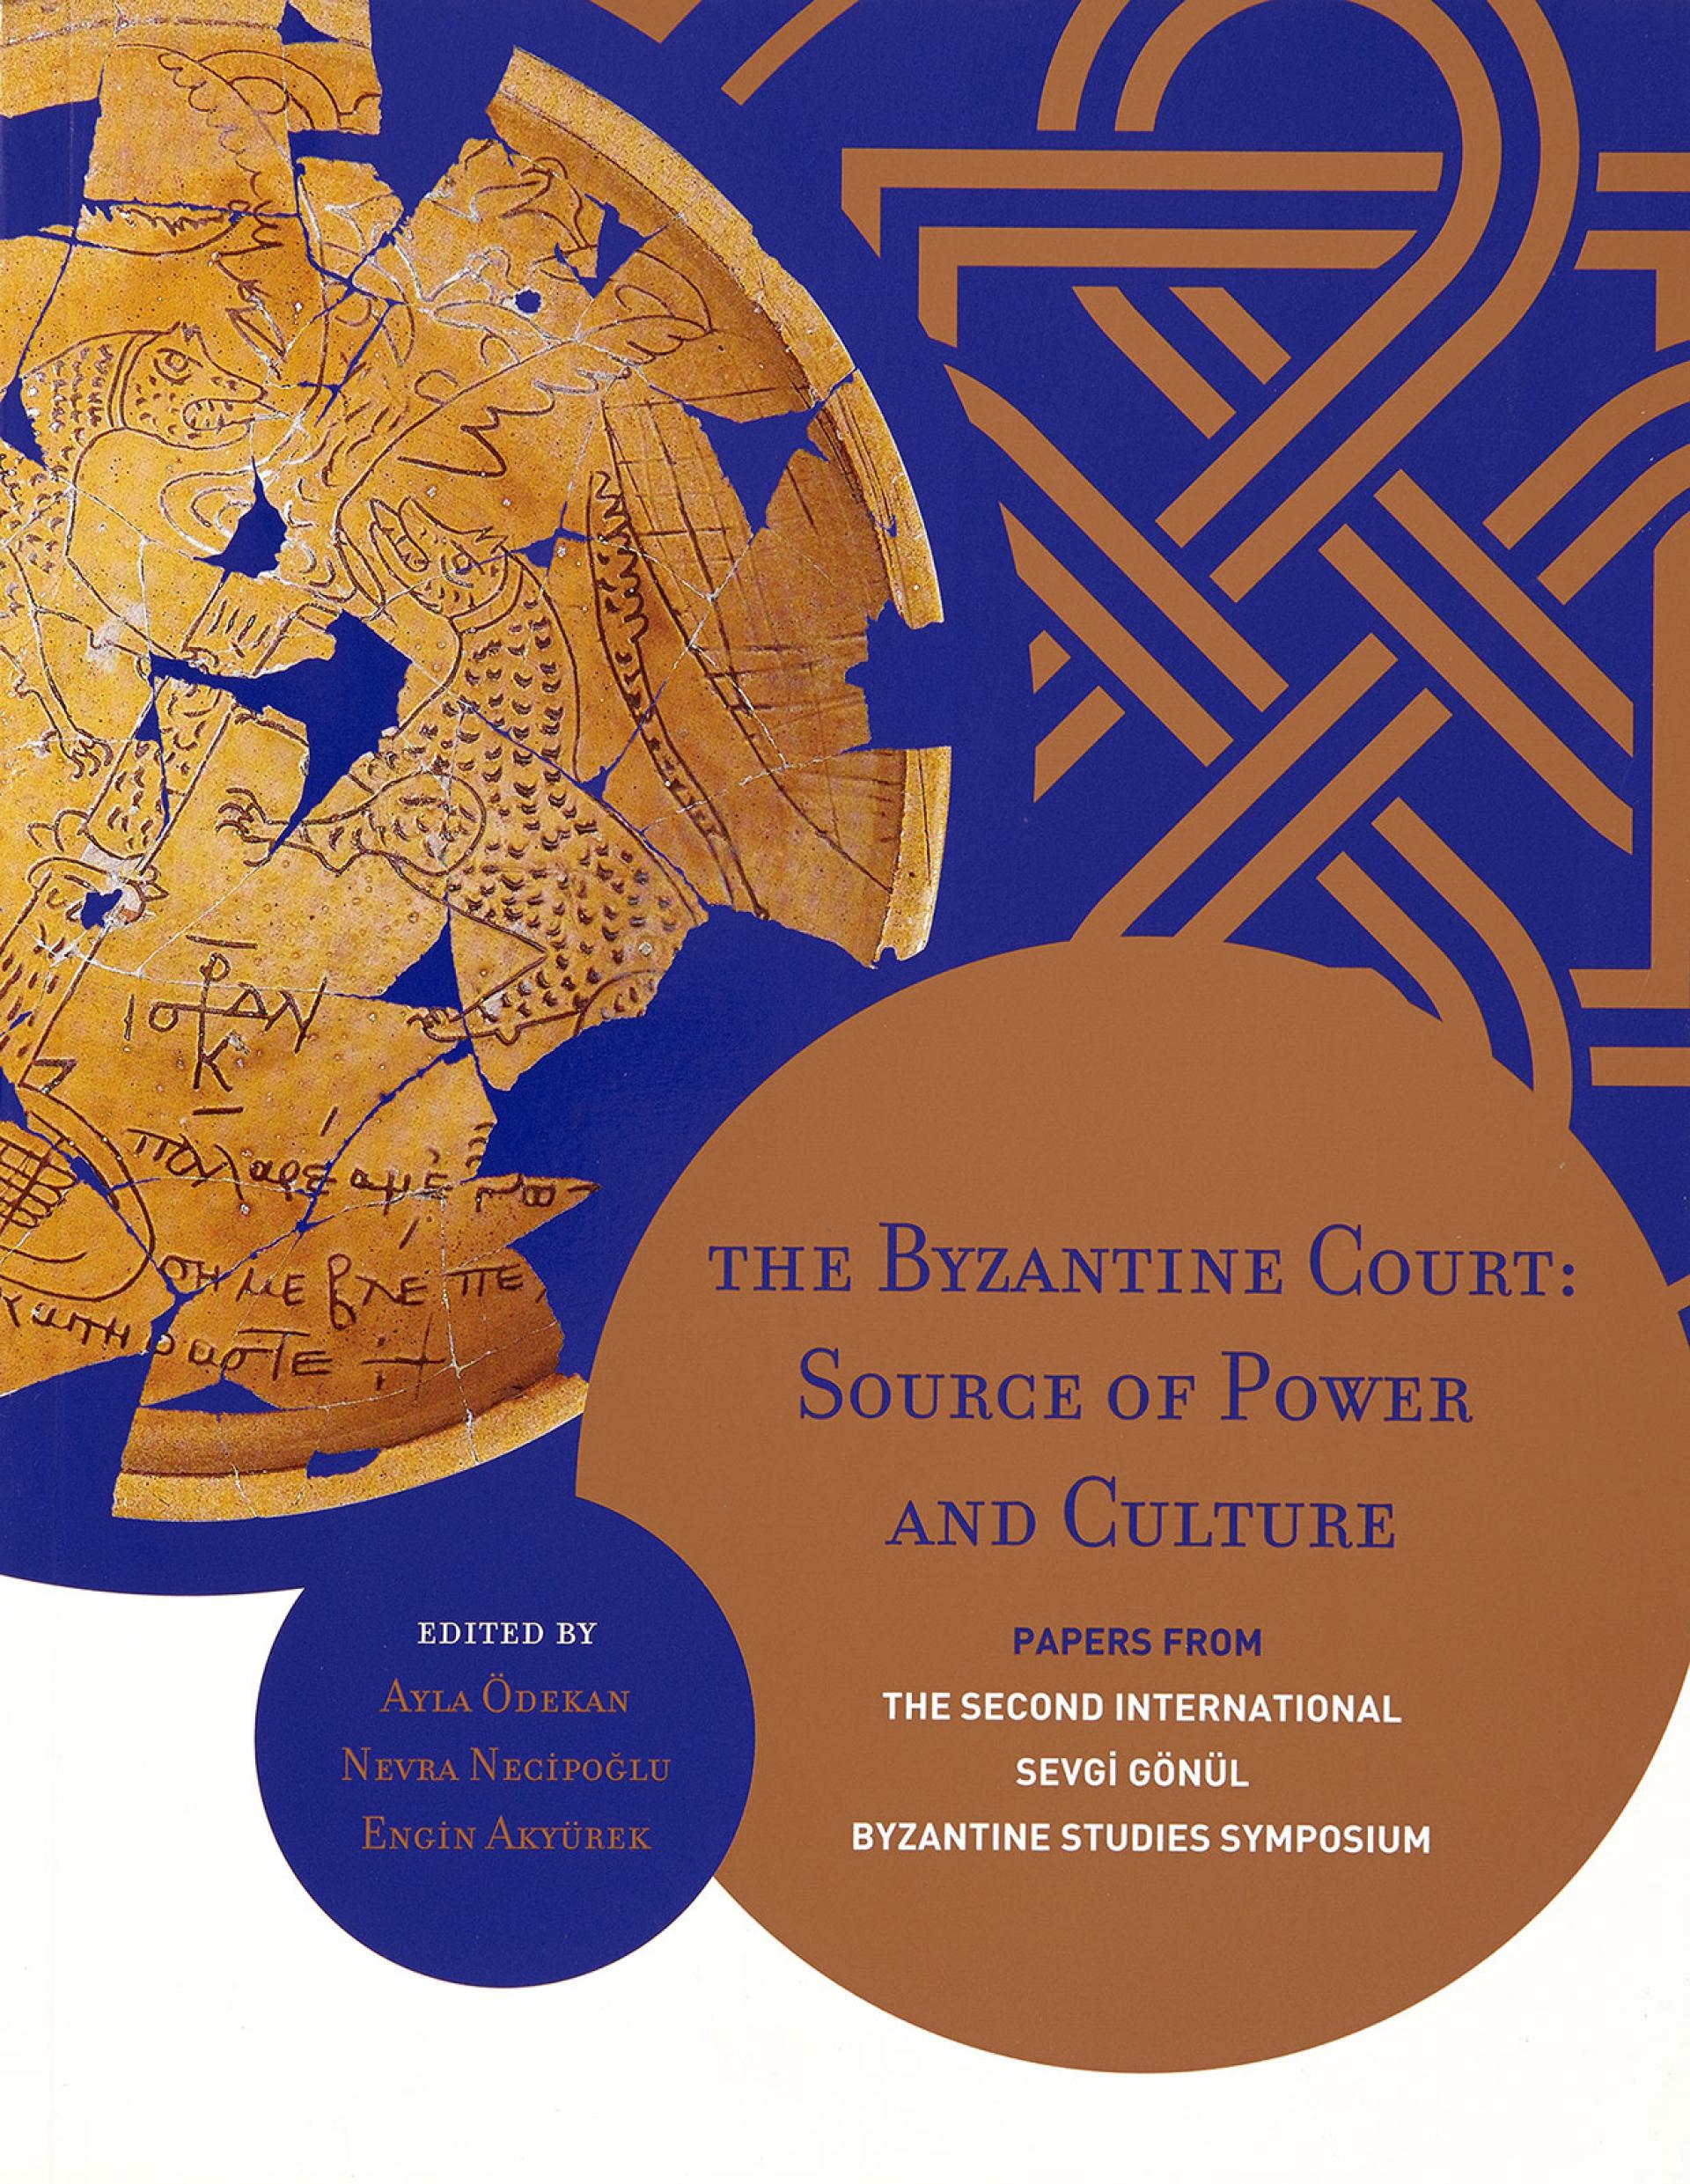 The Byzantine Court: Source of Power and Culture, Papers from the Second International Sevgi Gönül Byzantine Studies Symposium - BOOKS - Sadberk Hanım Museum